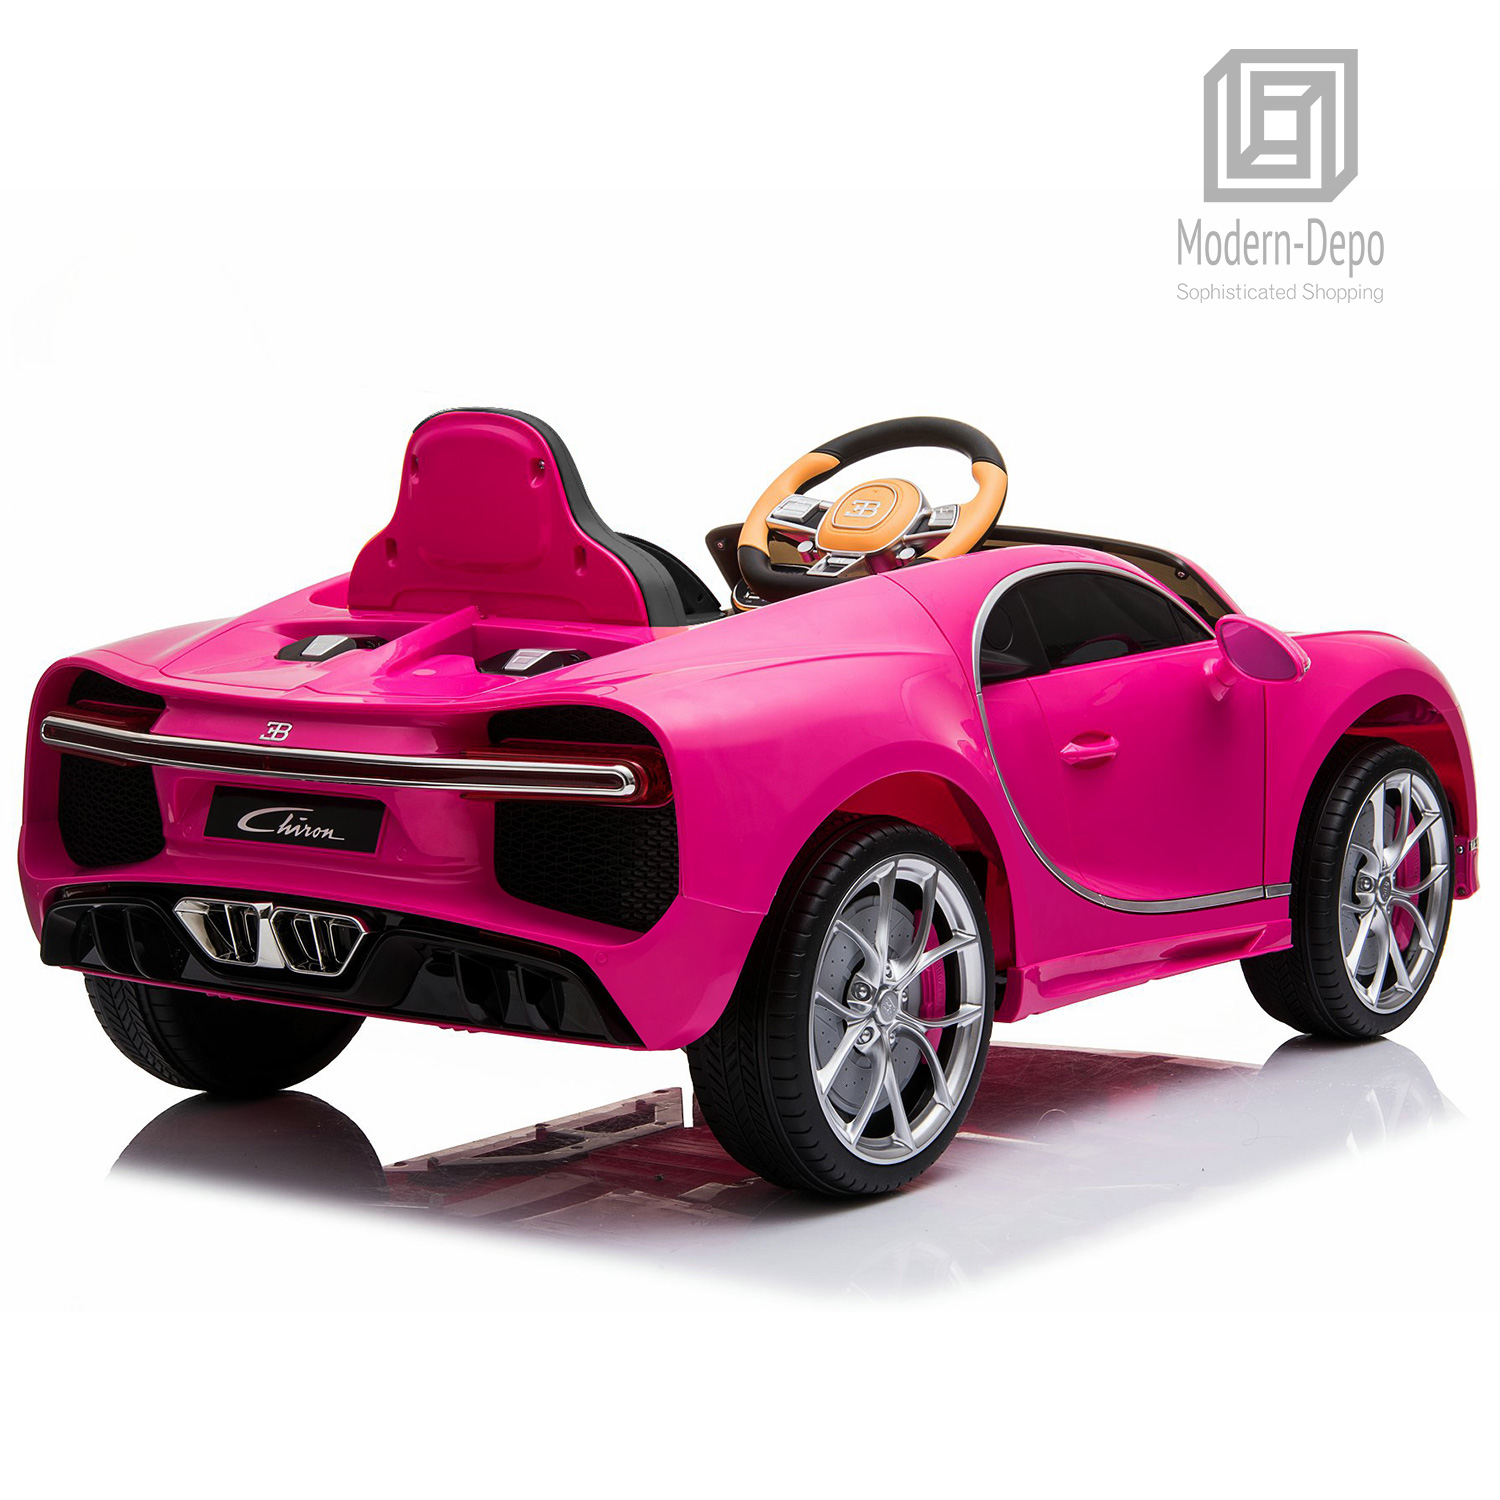 Bugatti-Chiron-12V-Kids-Ride-On-Car-with-Remote-Control-High-Speed-Motor miniature 27